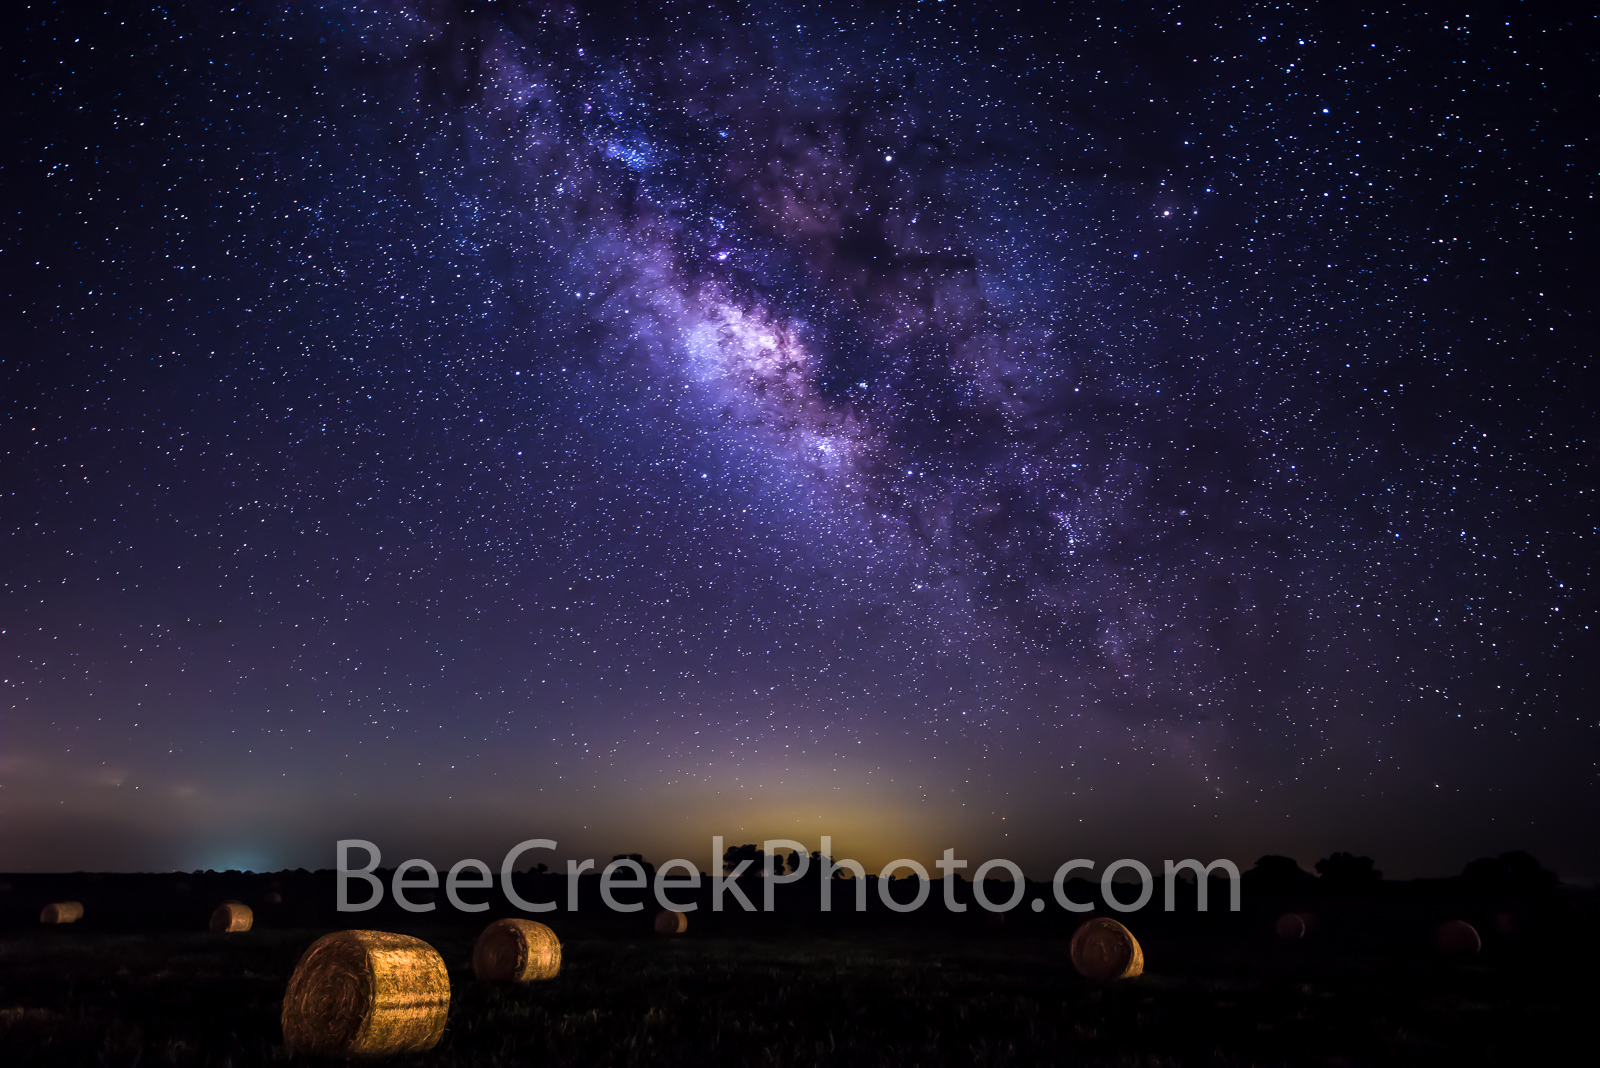 Astronomy, astrophotography, milky way, celestial, haybales,  nightscape, starscape,  ranch, farm, dark,  gallaxy solar system, night, night landscape, night landscapes, night photo,s star images, sta